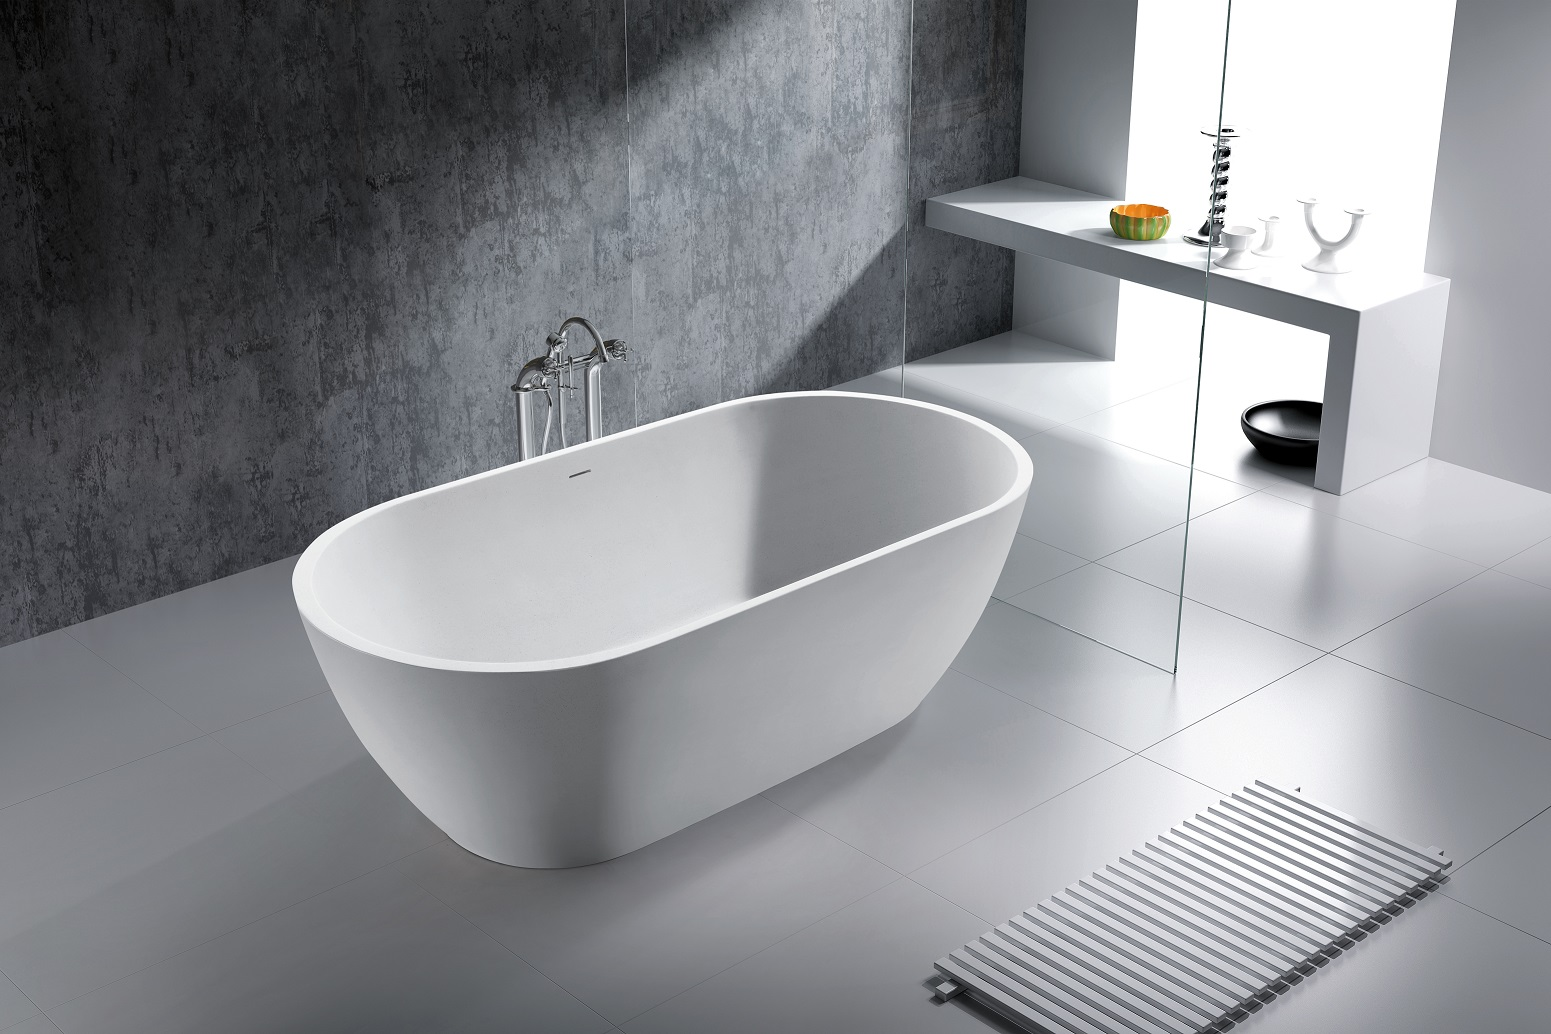 Accio luxury modern bathtub 70 9 for The bathroom designer